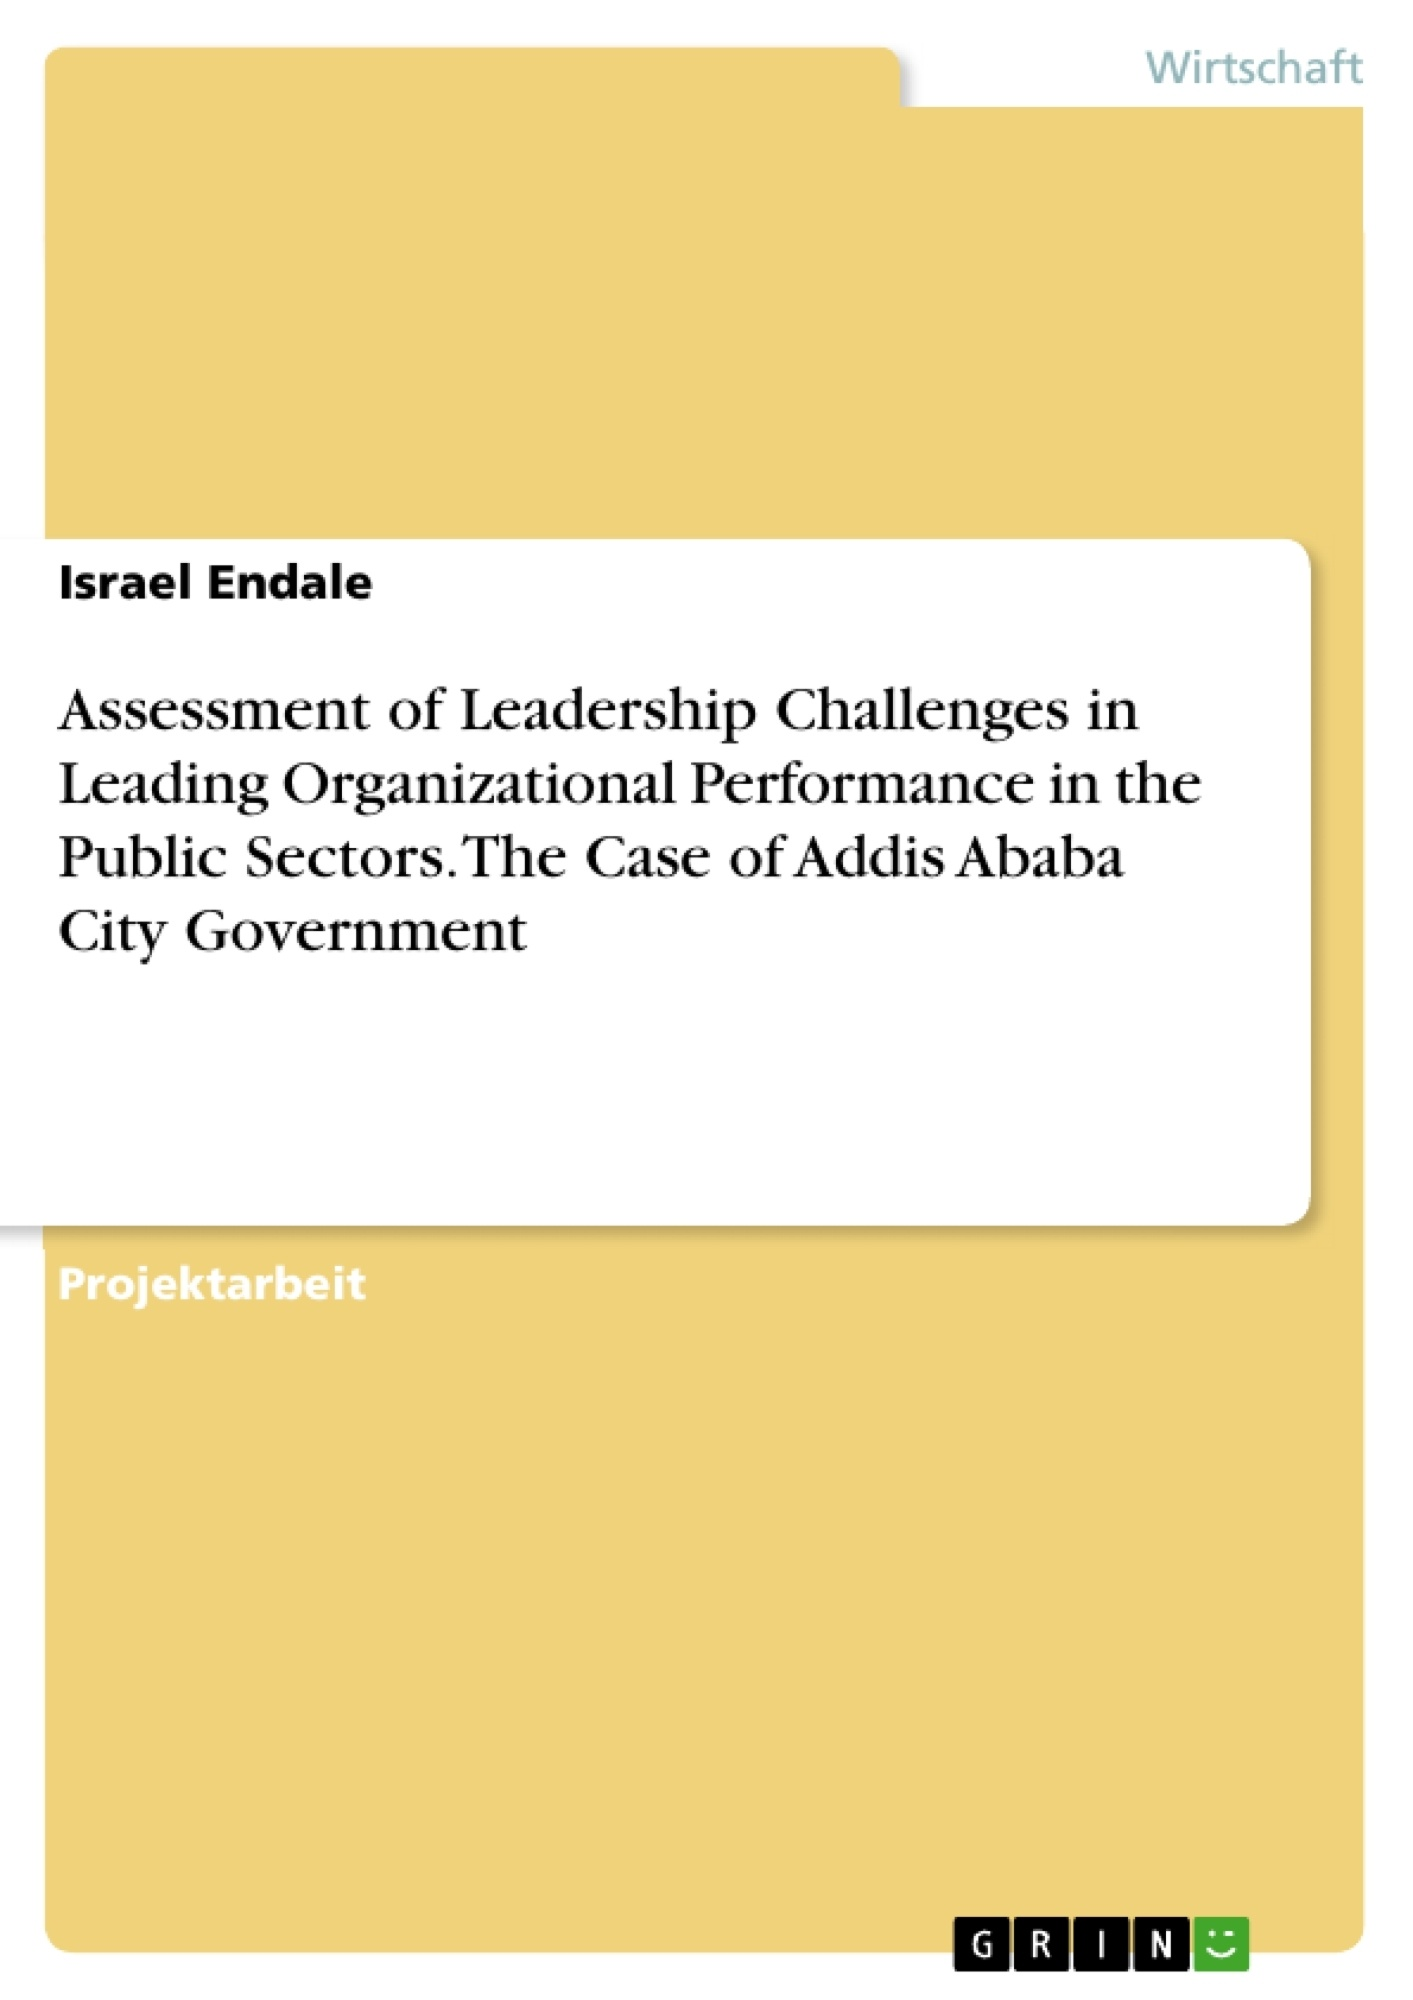 Titel: Assessment of Leadership Challenges in Leading Organizational Performance in the Public Sectors. The Case of Addis Ababa City Government